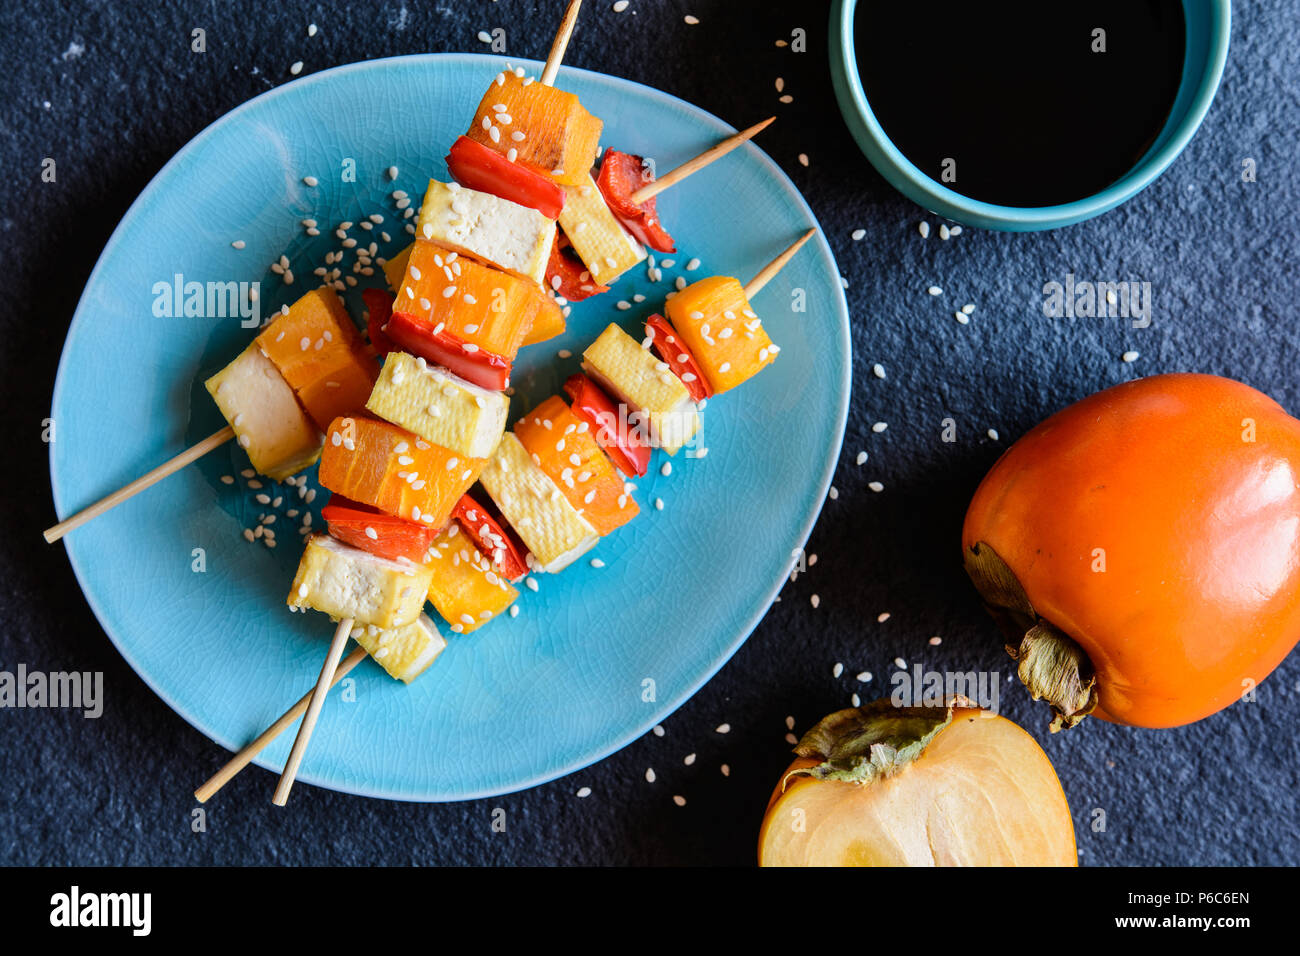 Vegetarian skewers with persimmons, Tofu cheese, red pepper, sesame seeds and served with soya sauce - Stock Image